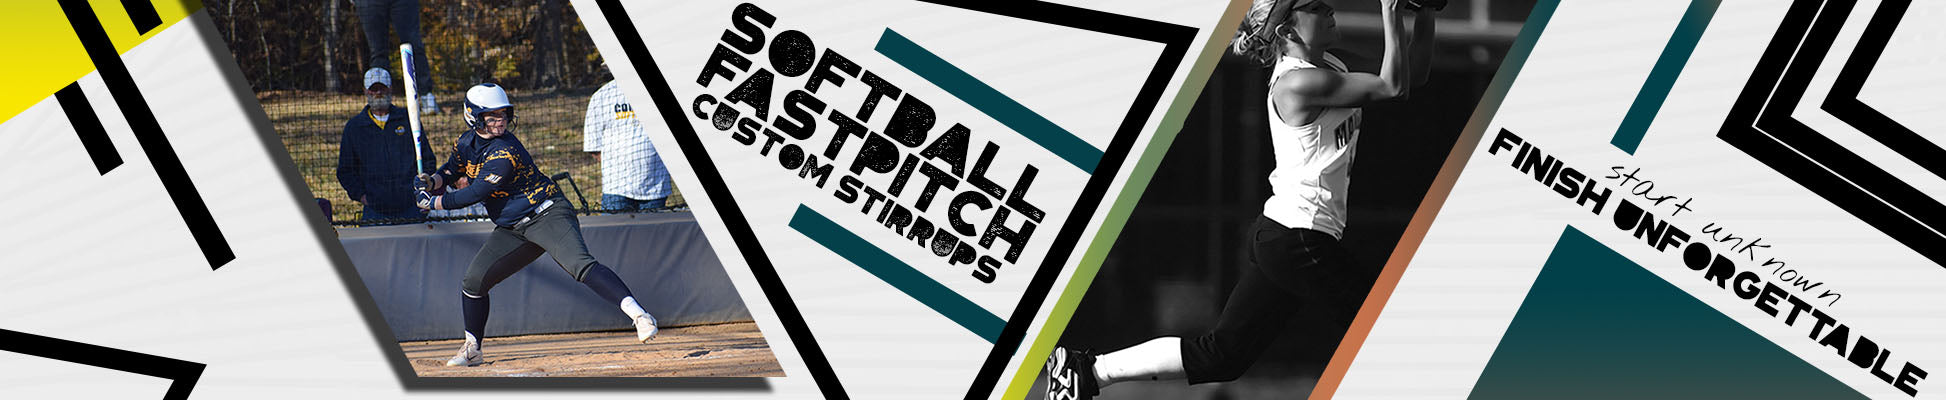 custom fastpitch softball stirrups